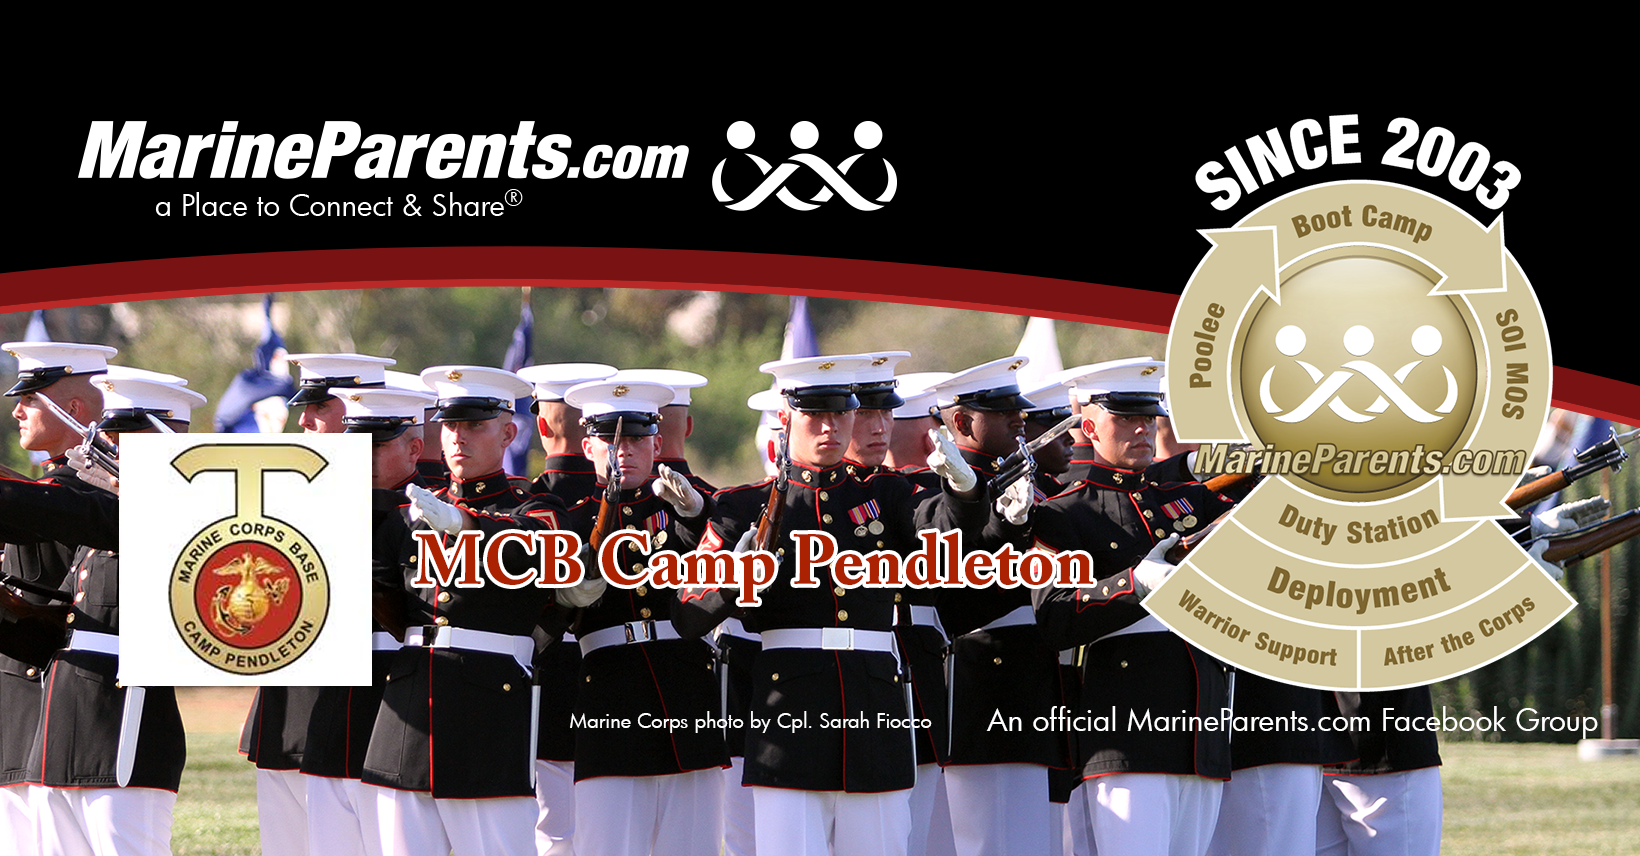 MCB Camp Pendleton Facebook Group